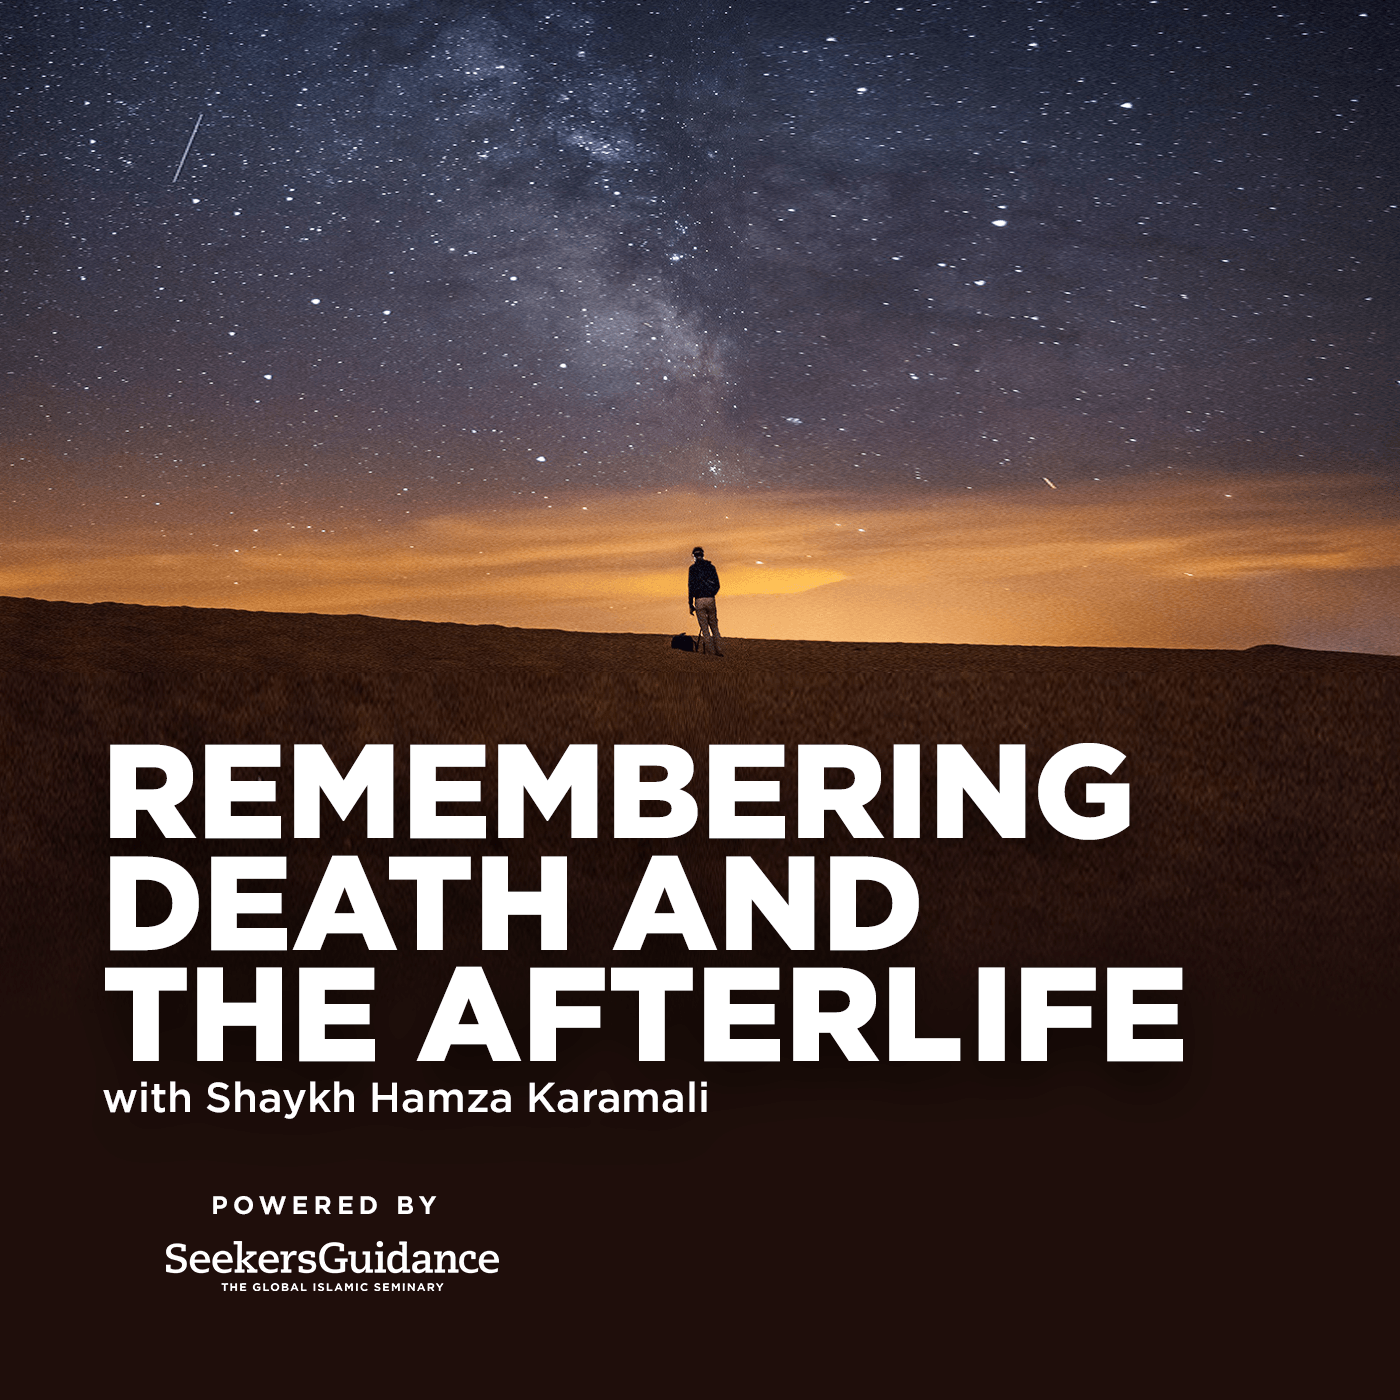 Remembering Death and the Afterlife with Shaykh Hamza Karamali